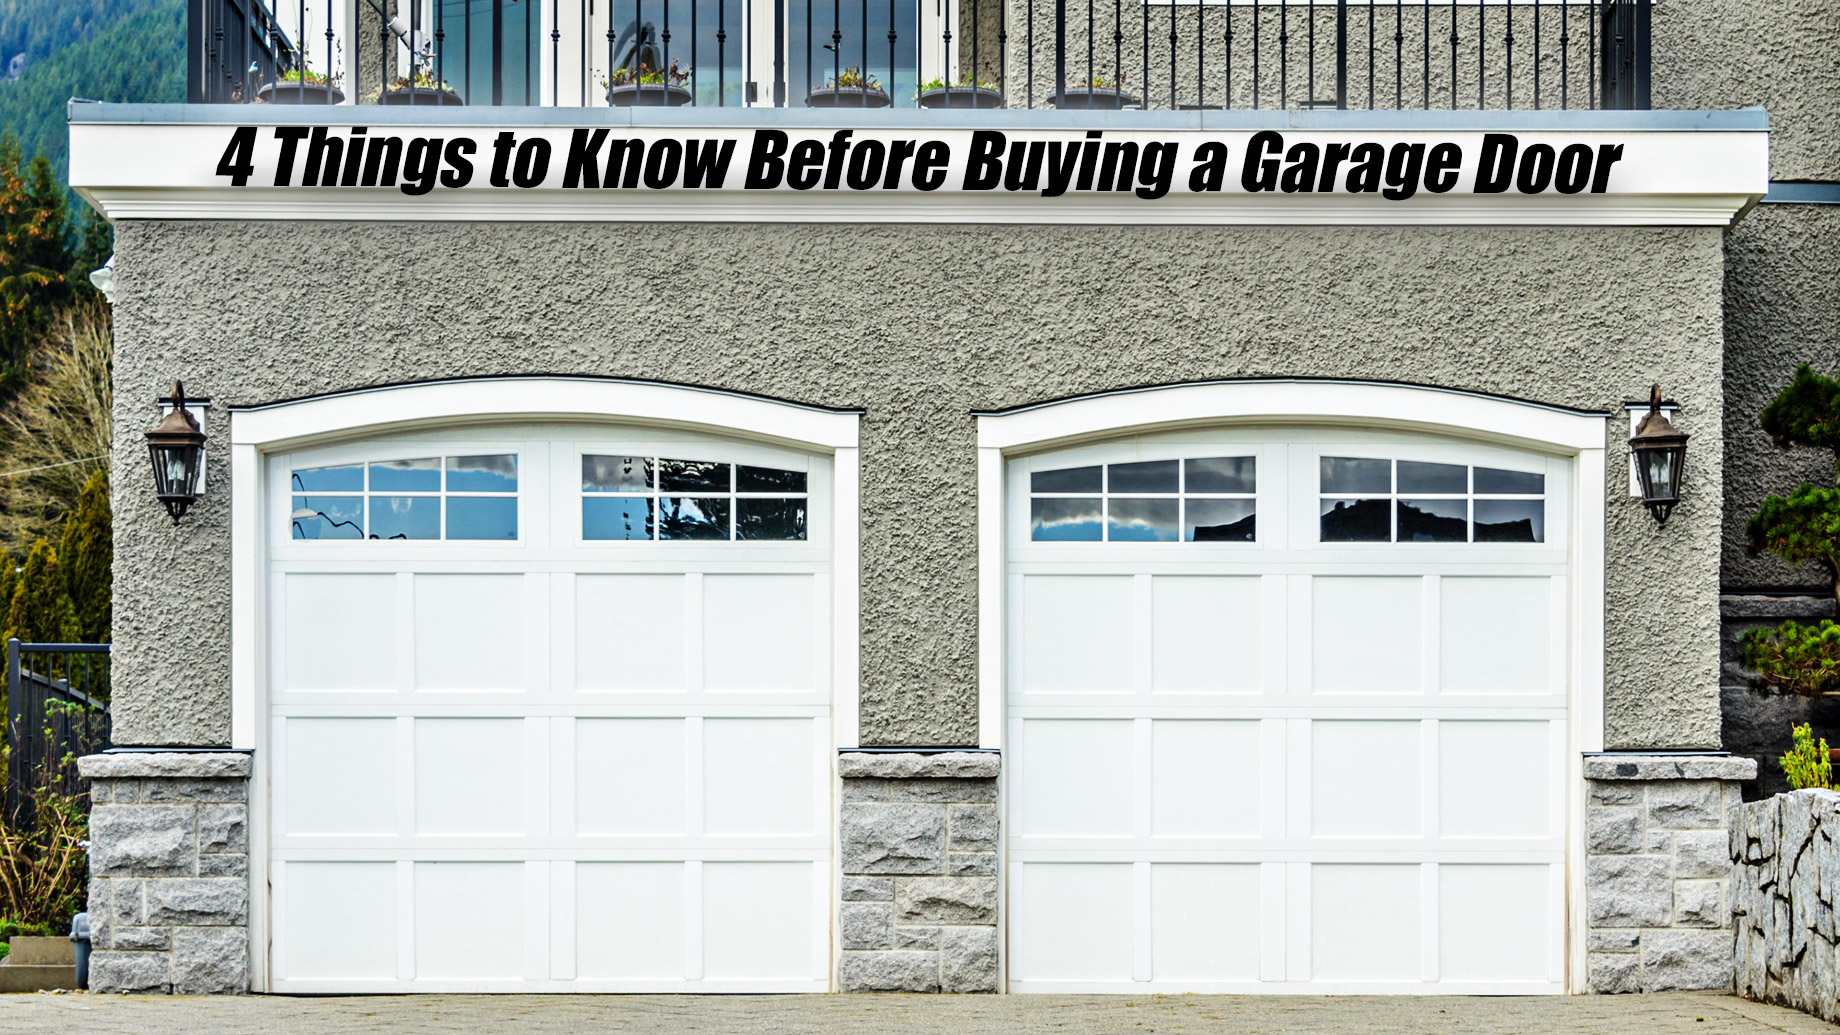 4 Things to Know Before Buying a Garage Door